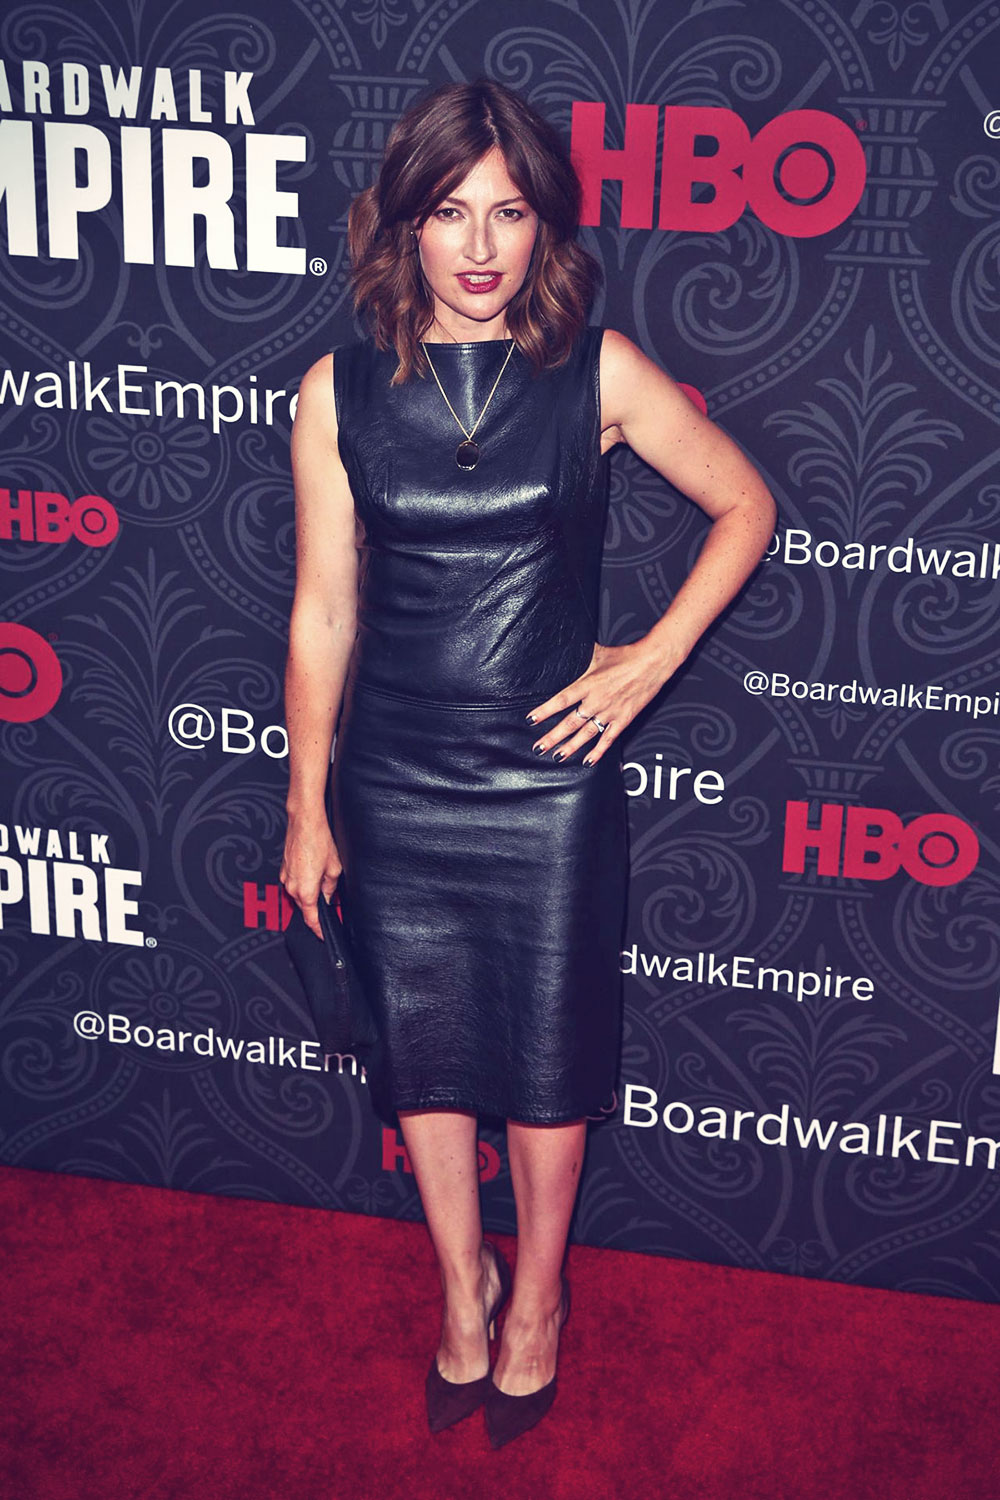 Kelly MacDonald attends the season five premiere of their hit show Boardwalk Empire